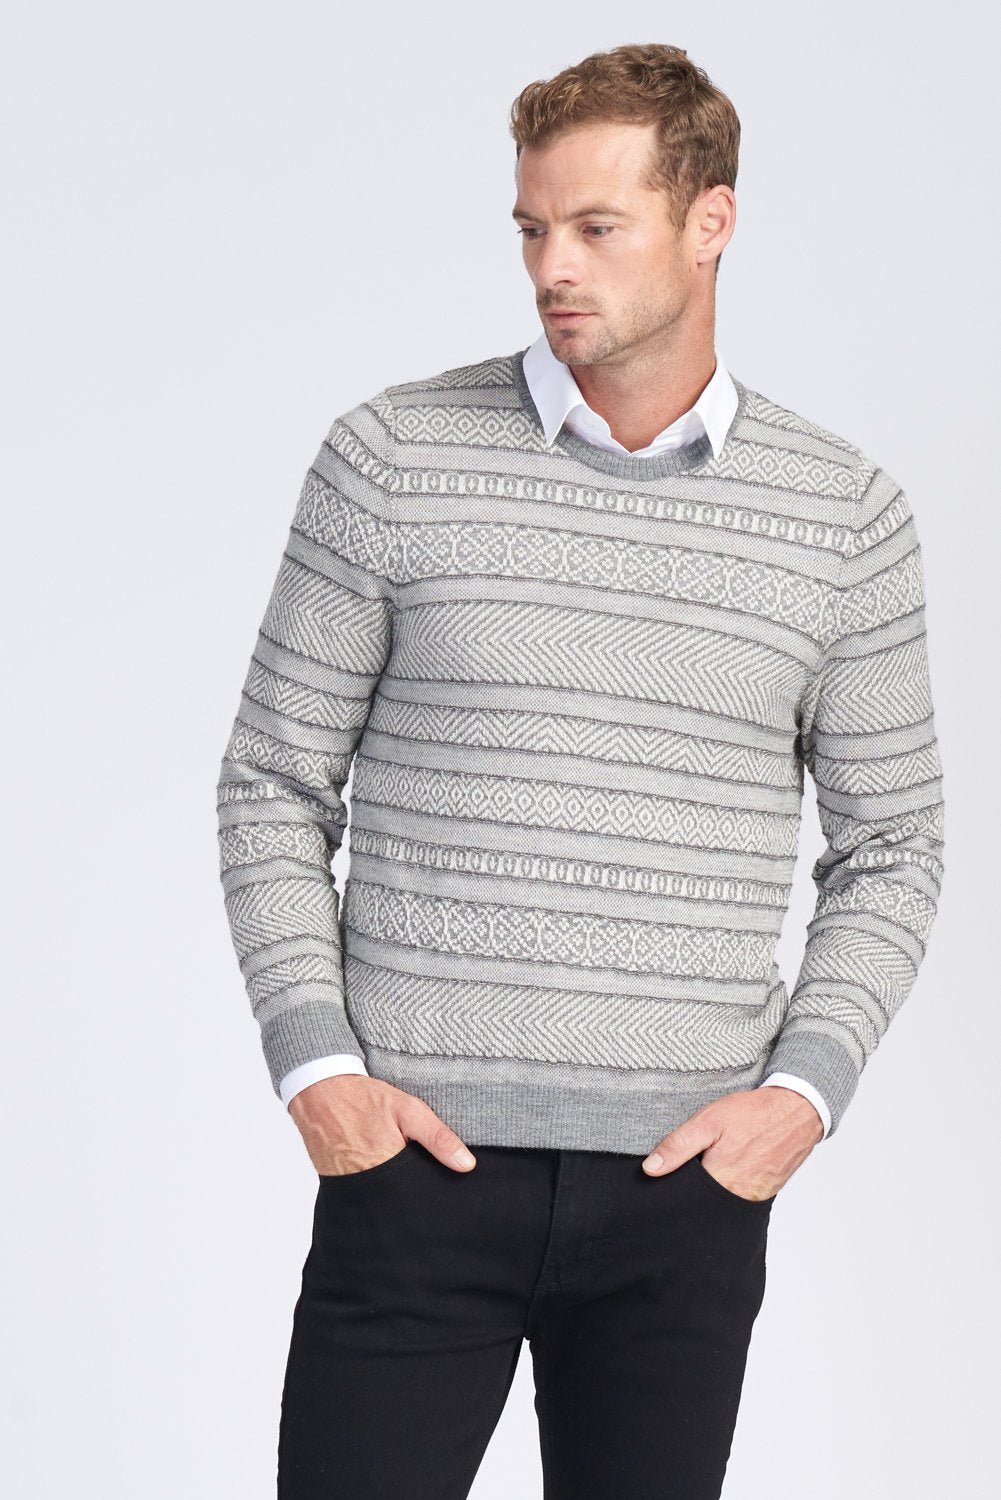 MENS L/S CREW NECK JACQUARD JUMPER - Woolshed Gallery